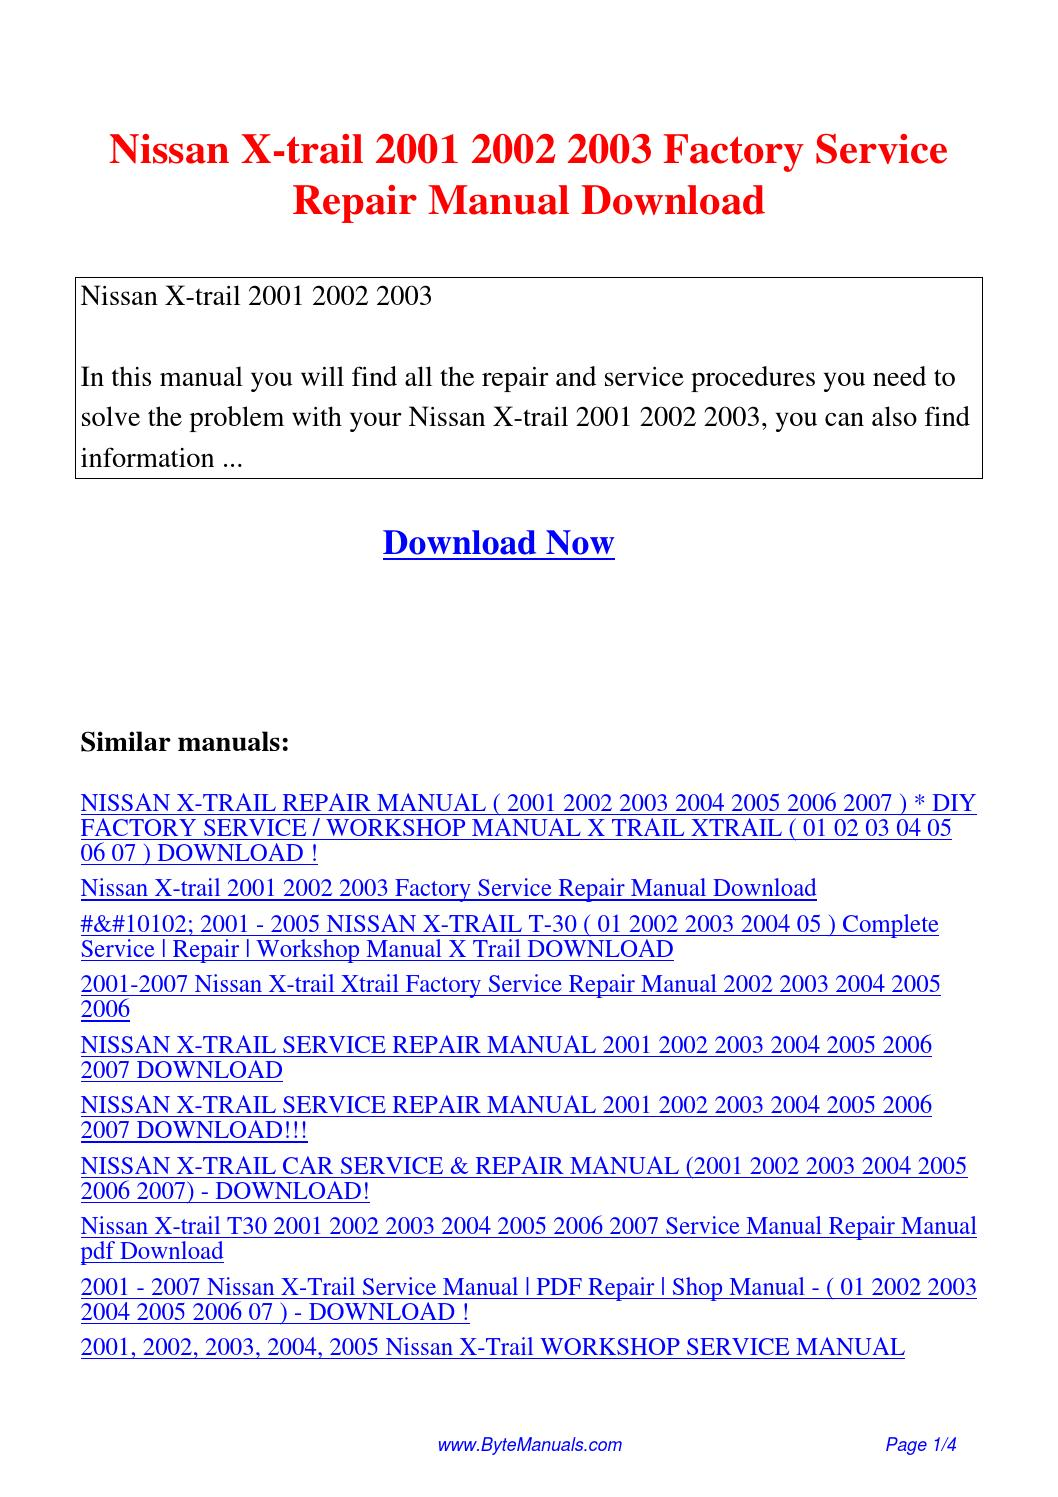 Nissan X-trail 2001 2002 2003 Factory Service Repair Manual.pdf by Ging  Tang - issuu